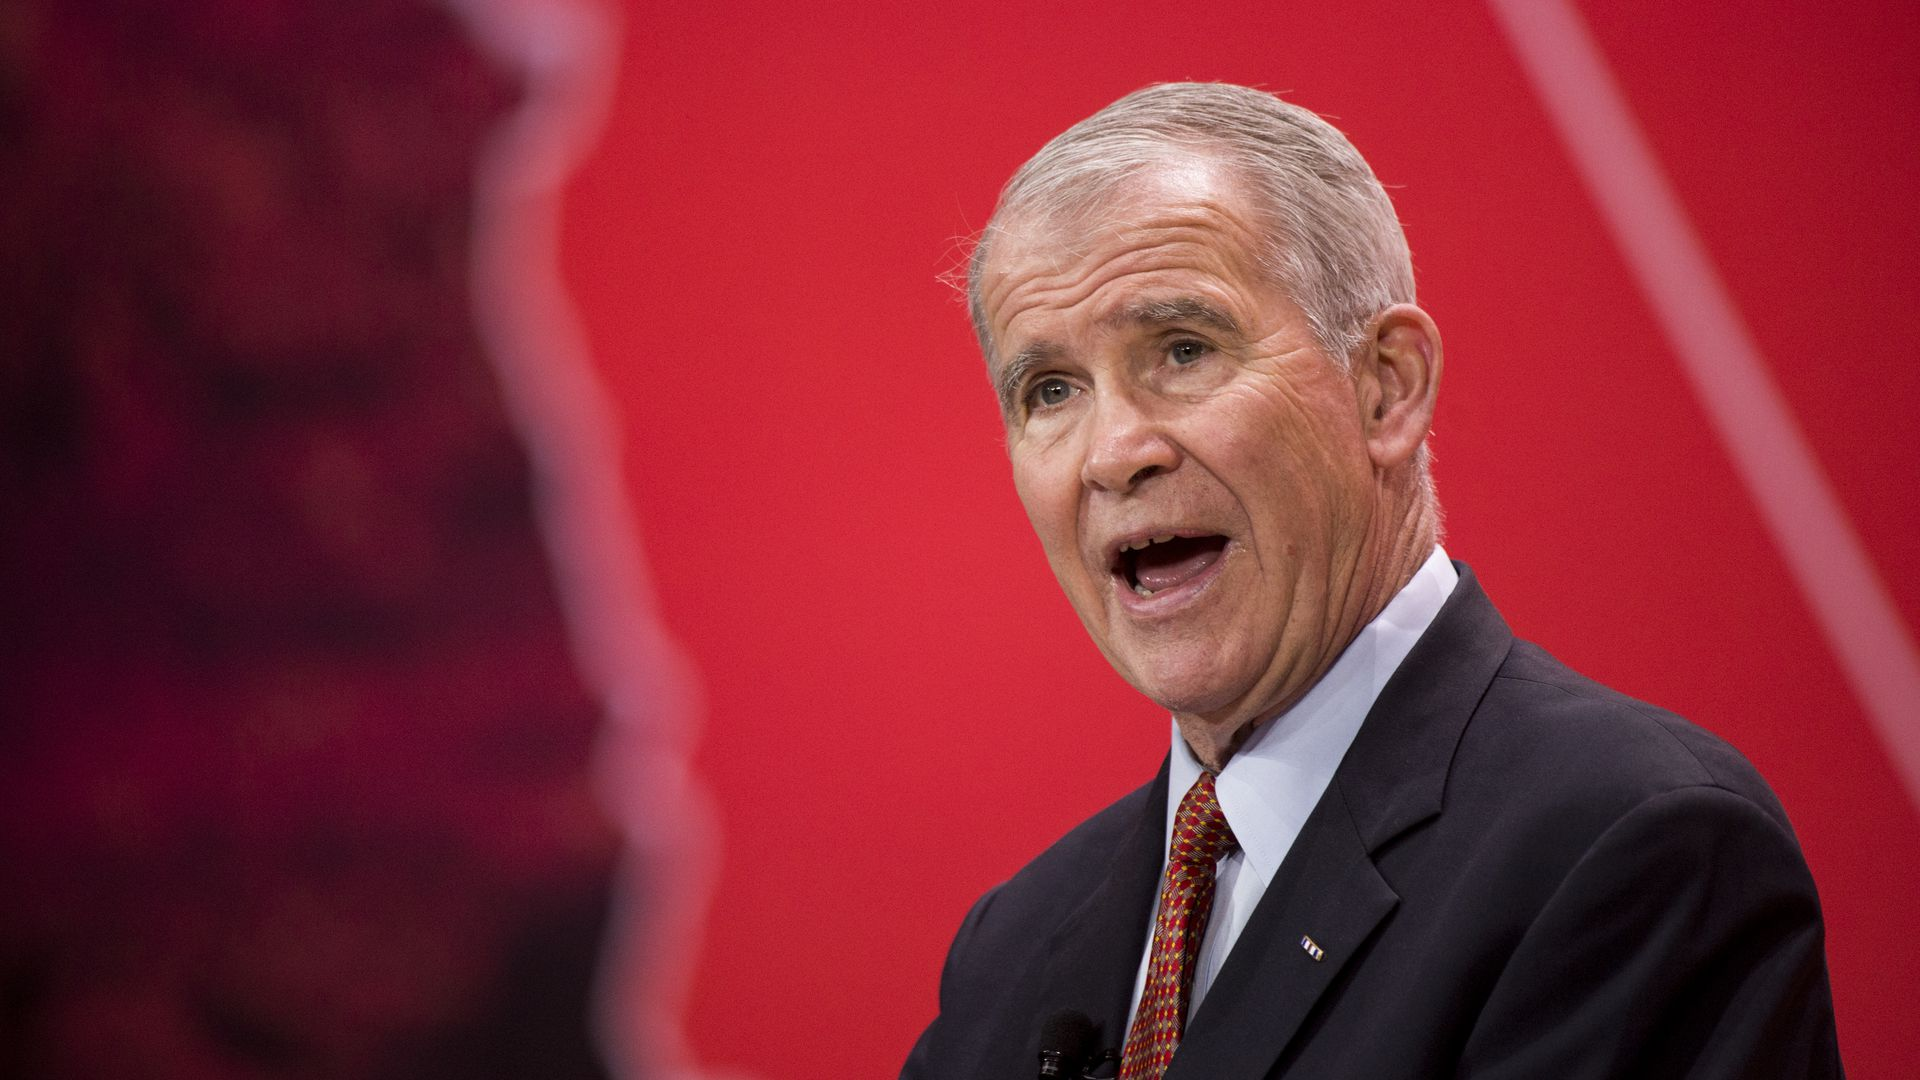 Oliver North speaking before a red background.